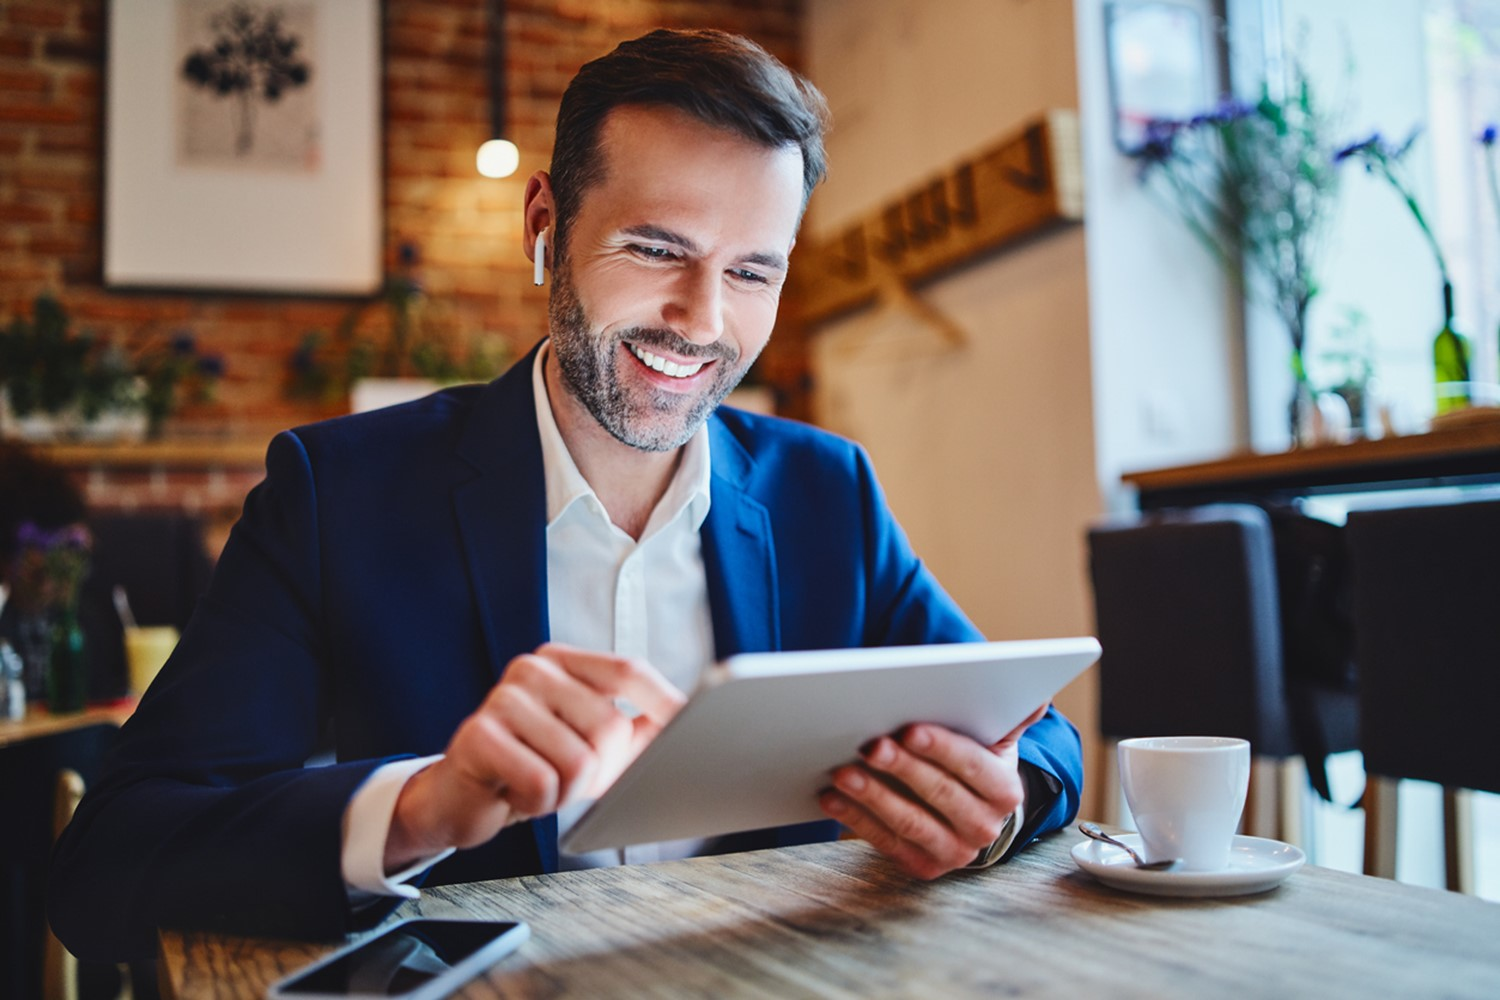 man on ipad/tablet smiling with an air pod in one ear looks like his in a coffee shop